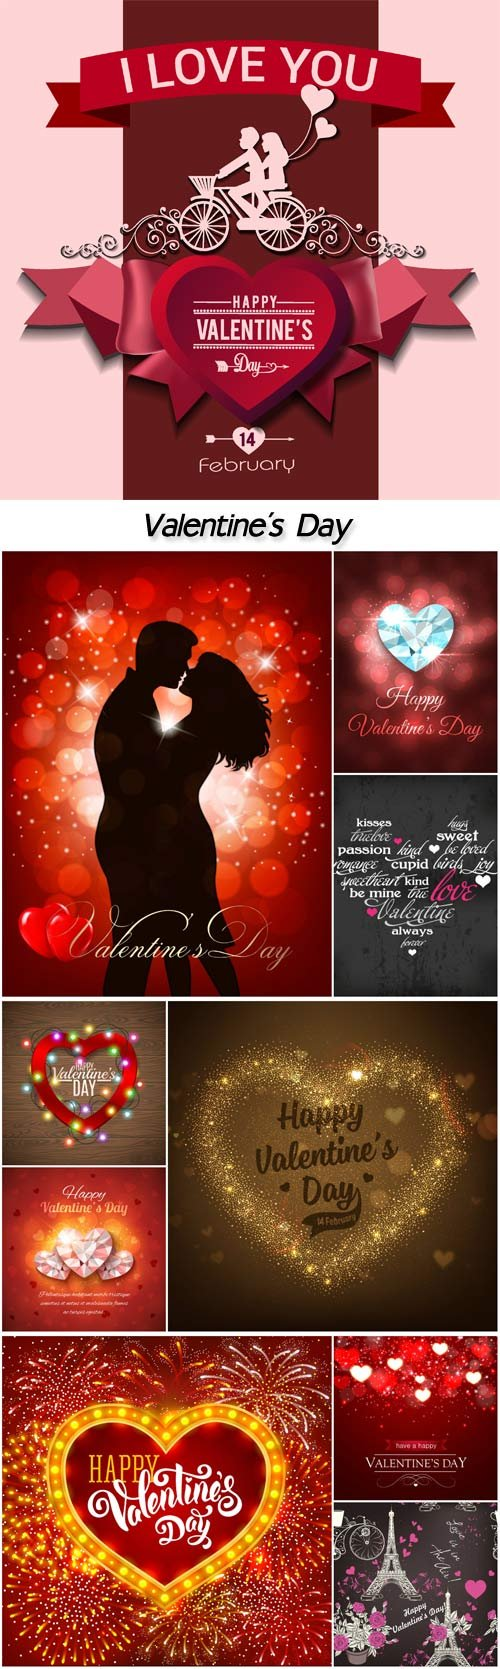 Valentine's Day, romantic backgrounds vector